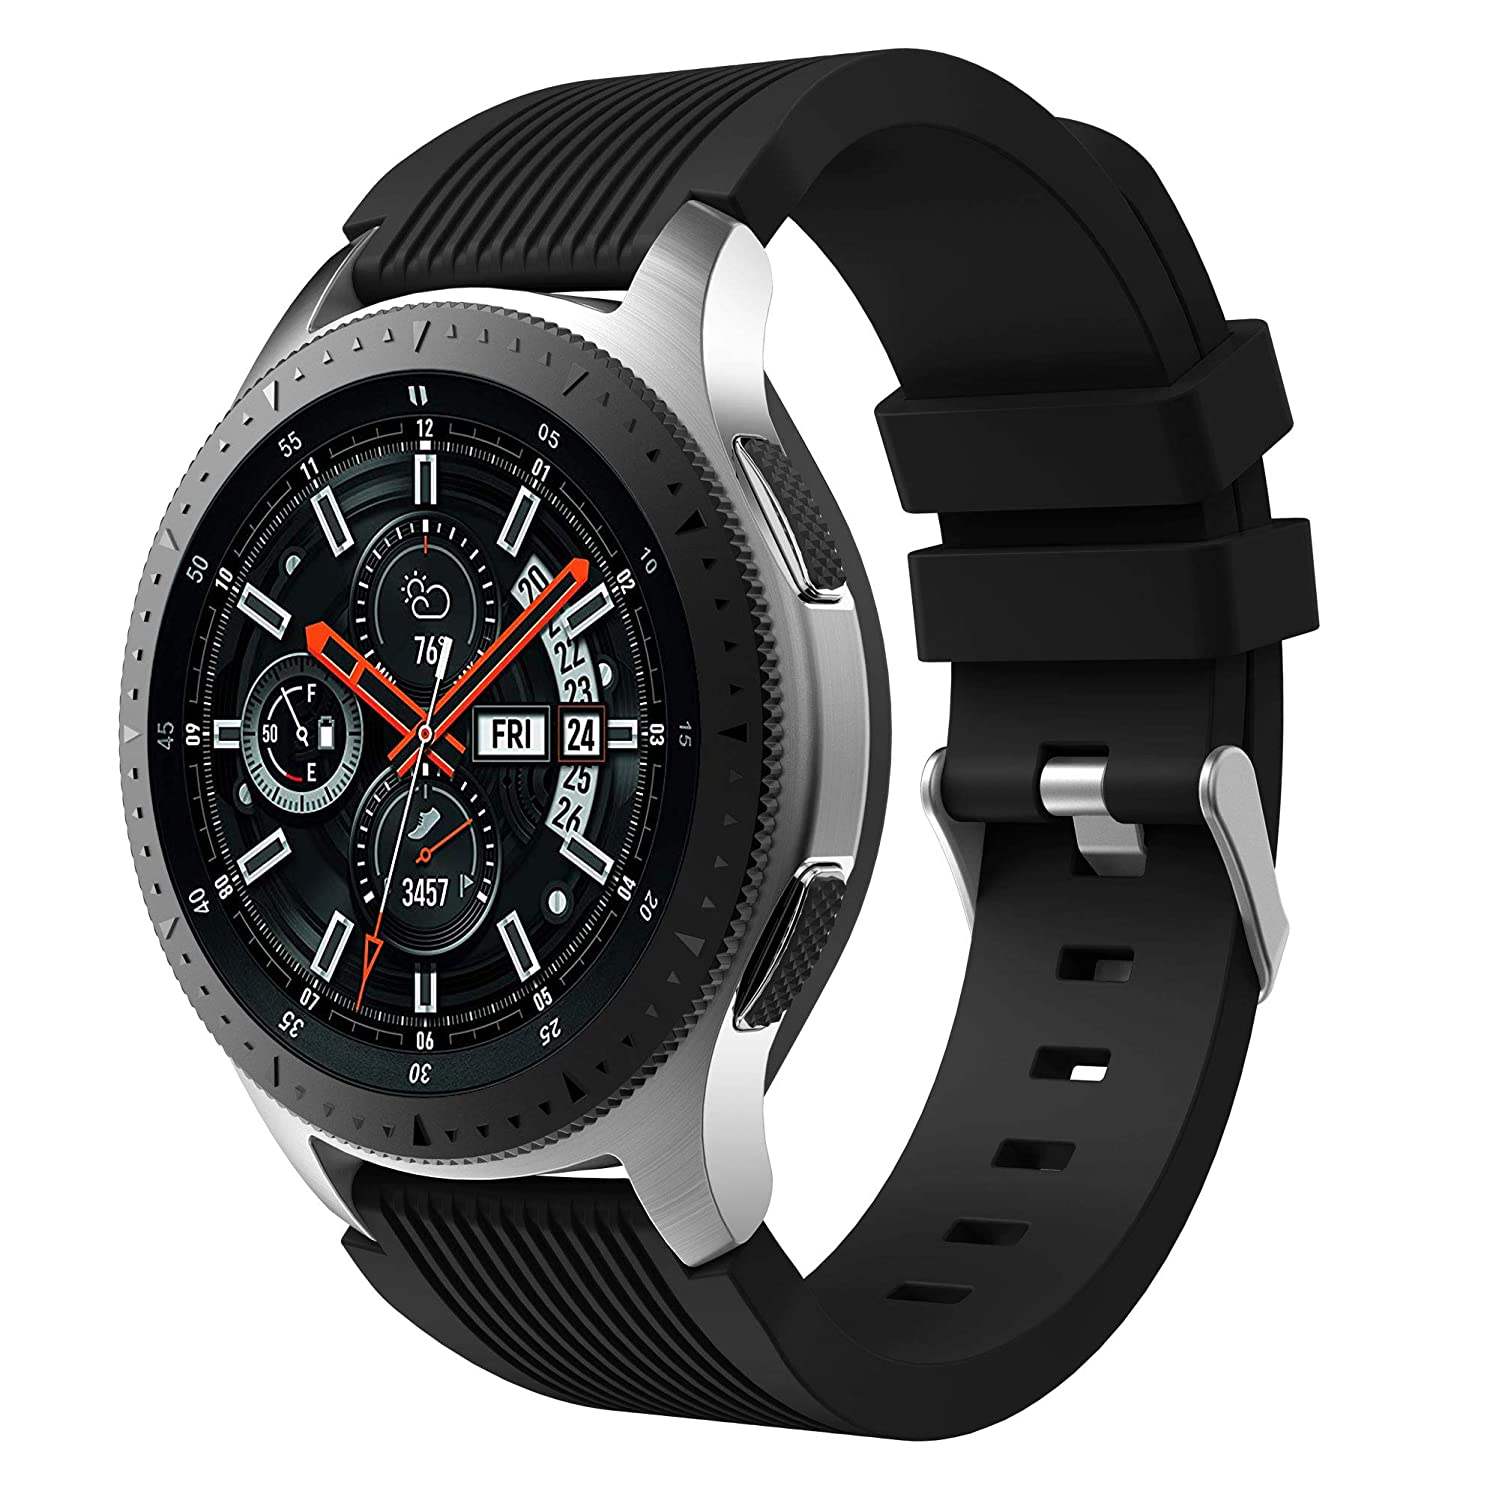 Amazon.com: Senter for Samsung Galaxy Watch 46mm Band,22mm ...